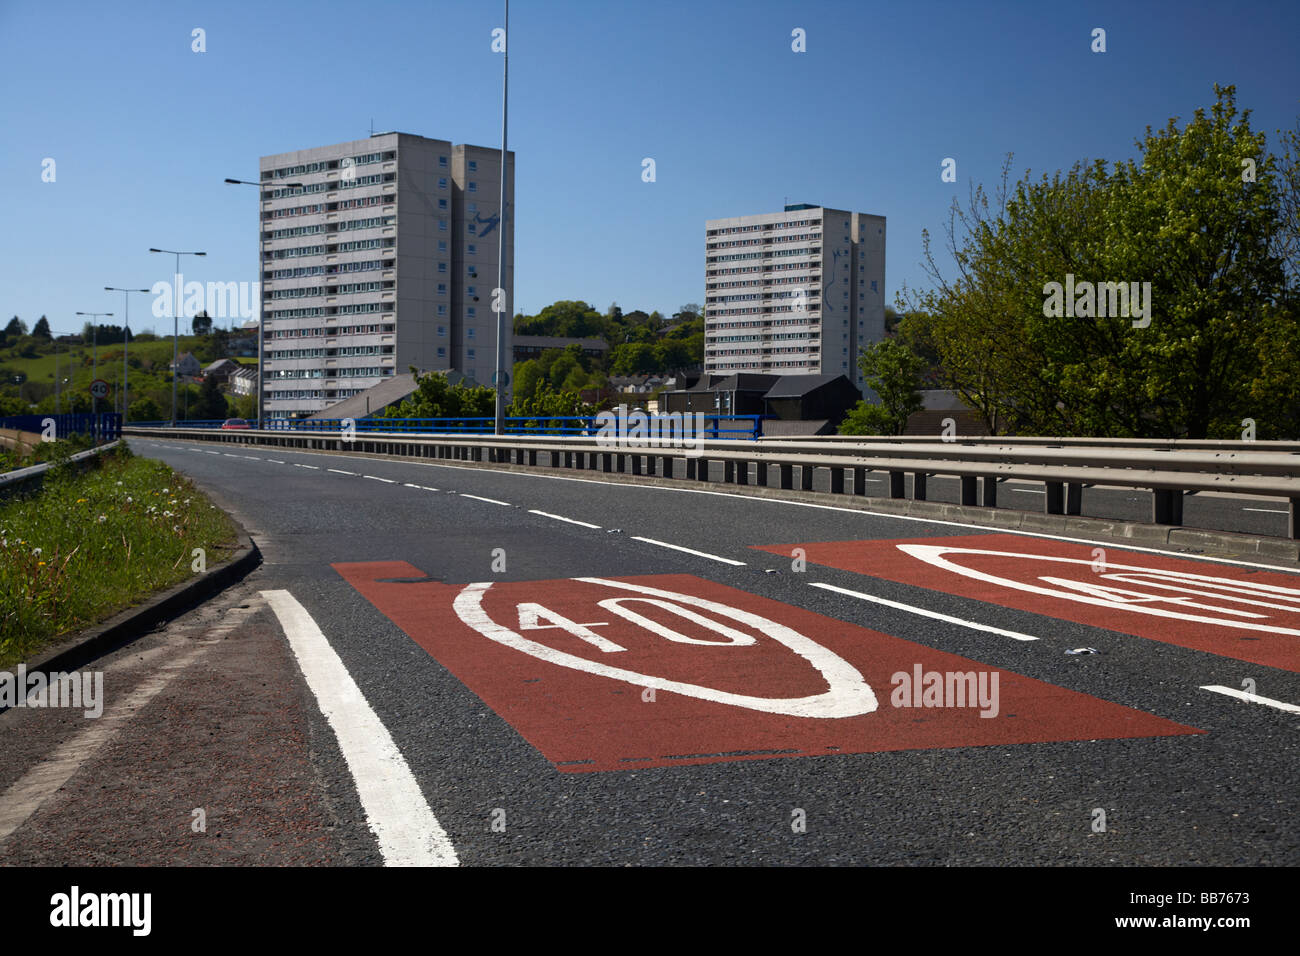 40mph signs in the road on the dual carriageway leaving larne past the high rise inver flats in Larne - Stock Image